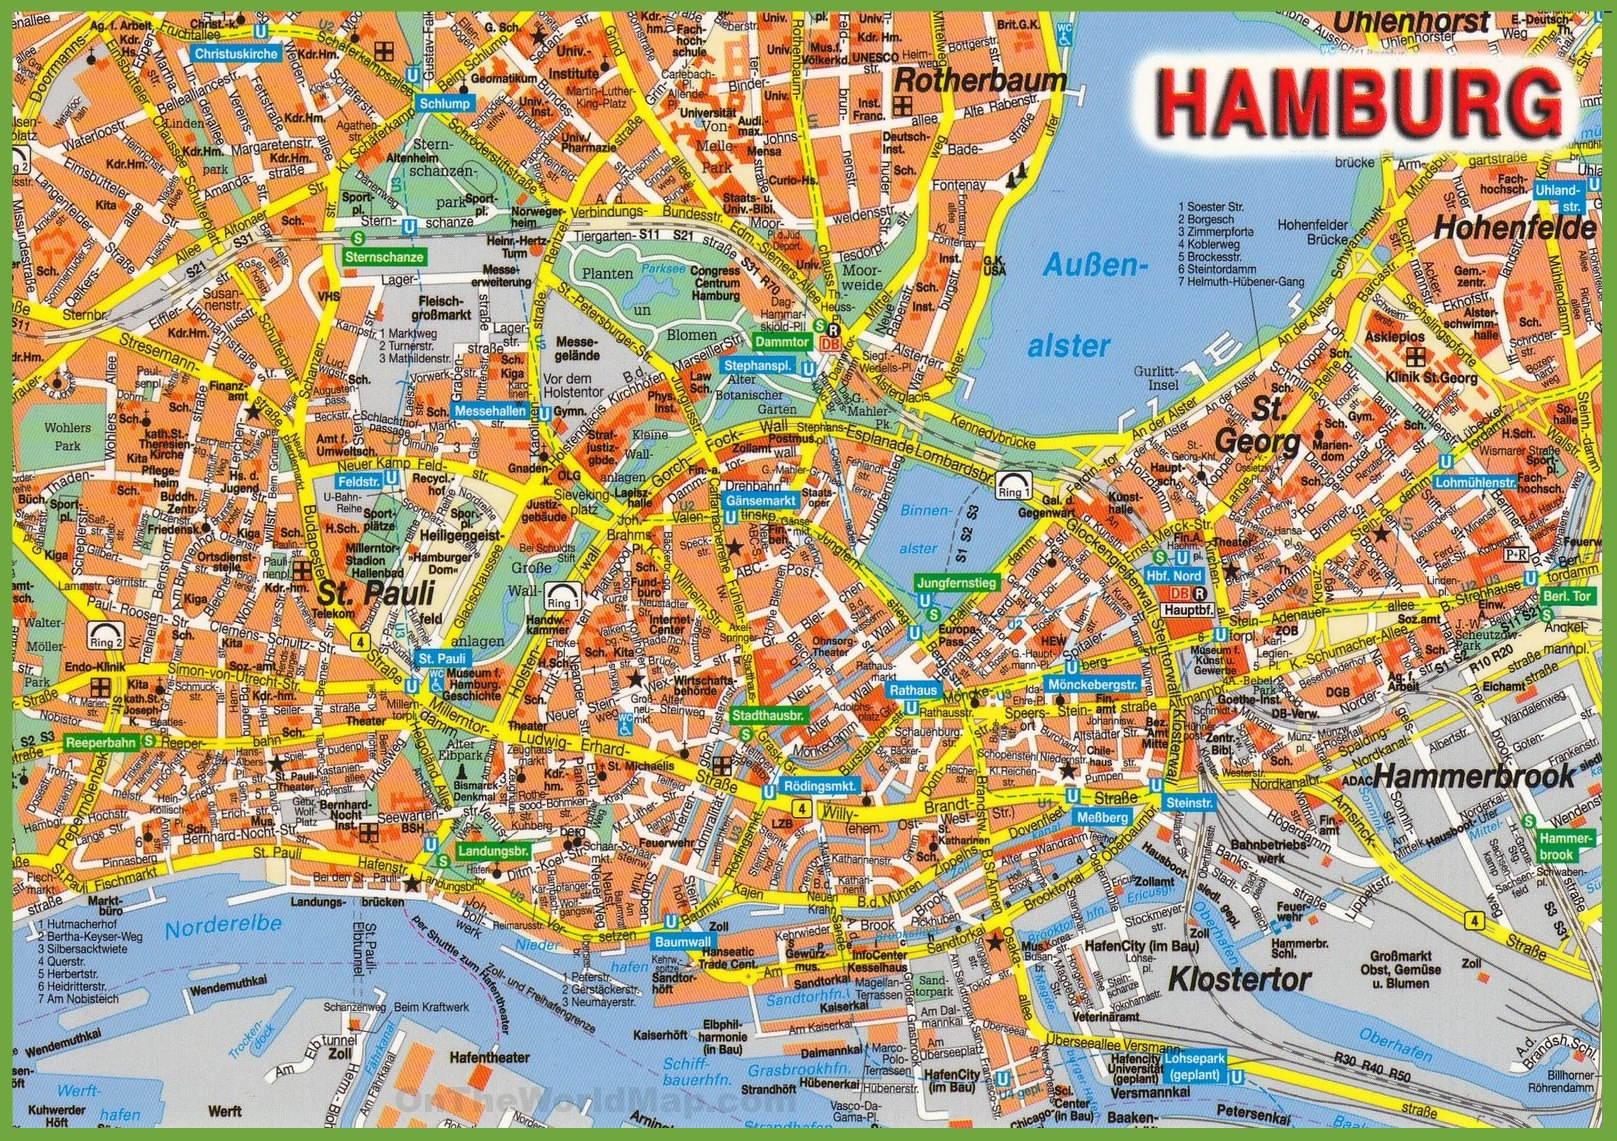 Hamburg tourist attractions map – Tourist Attractions Map In Russia